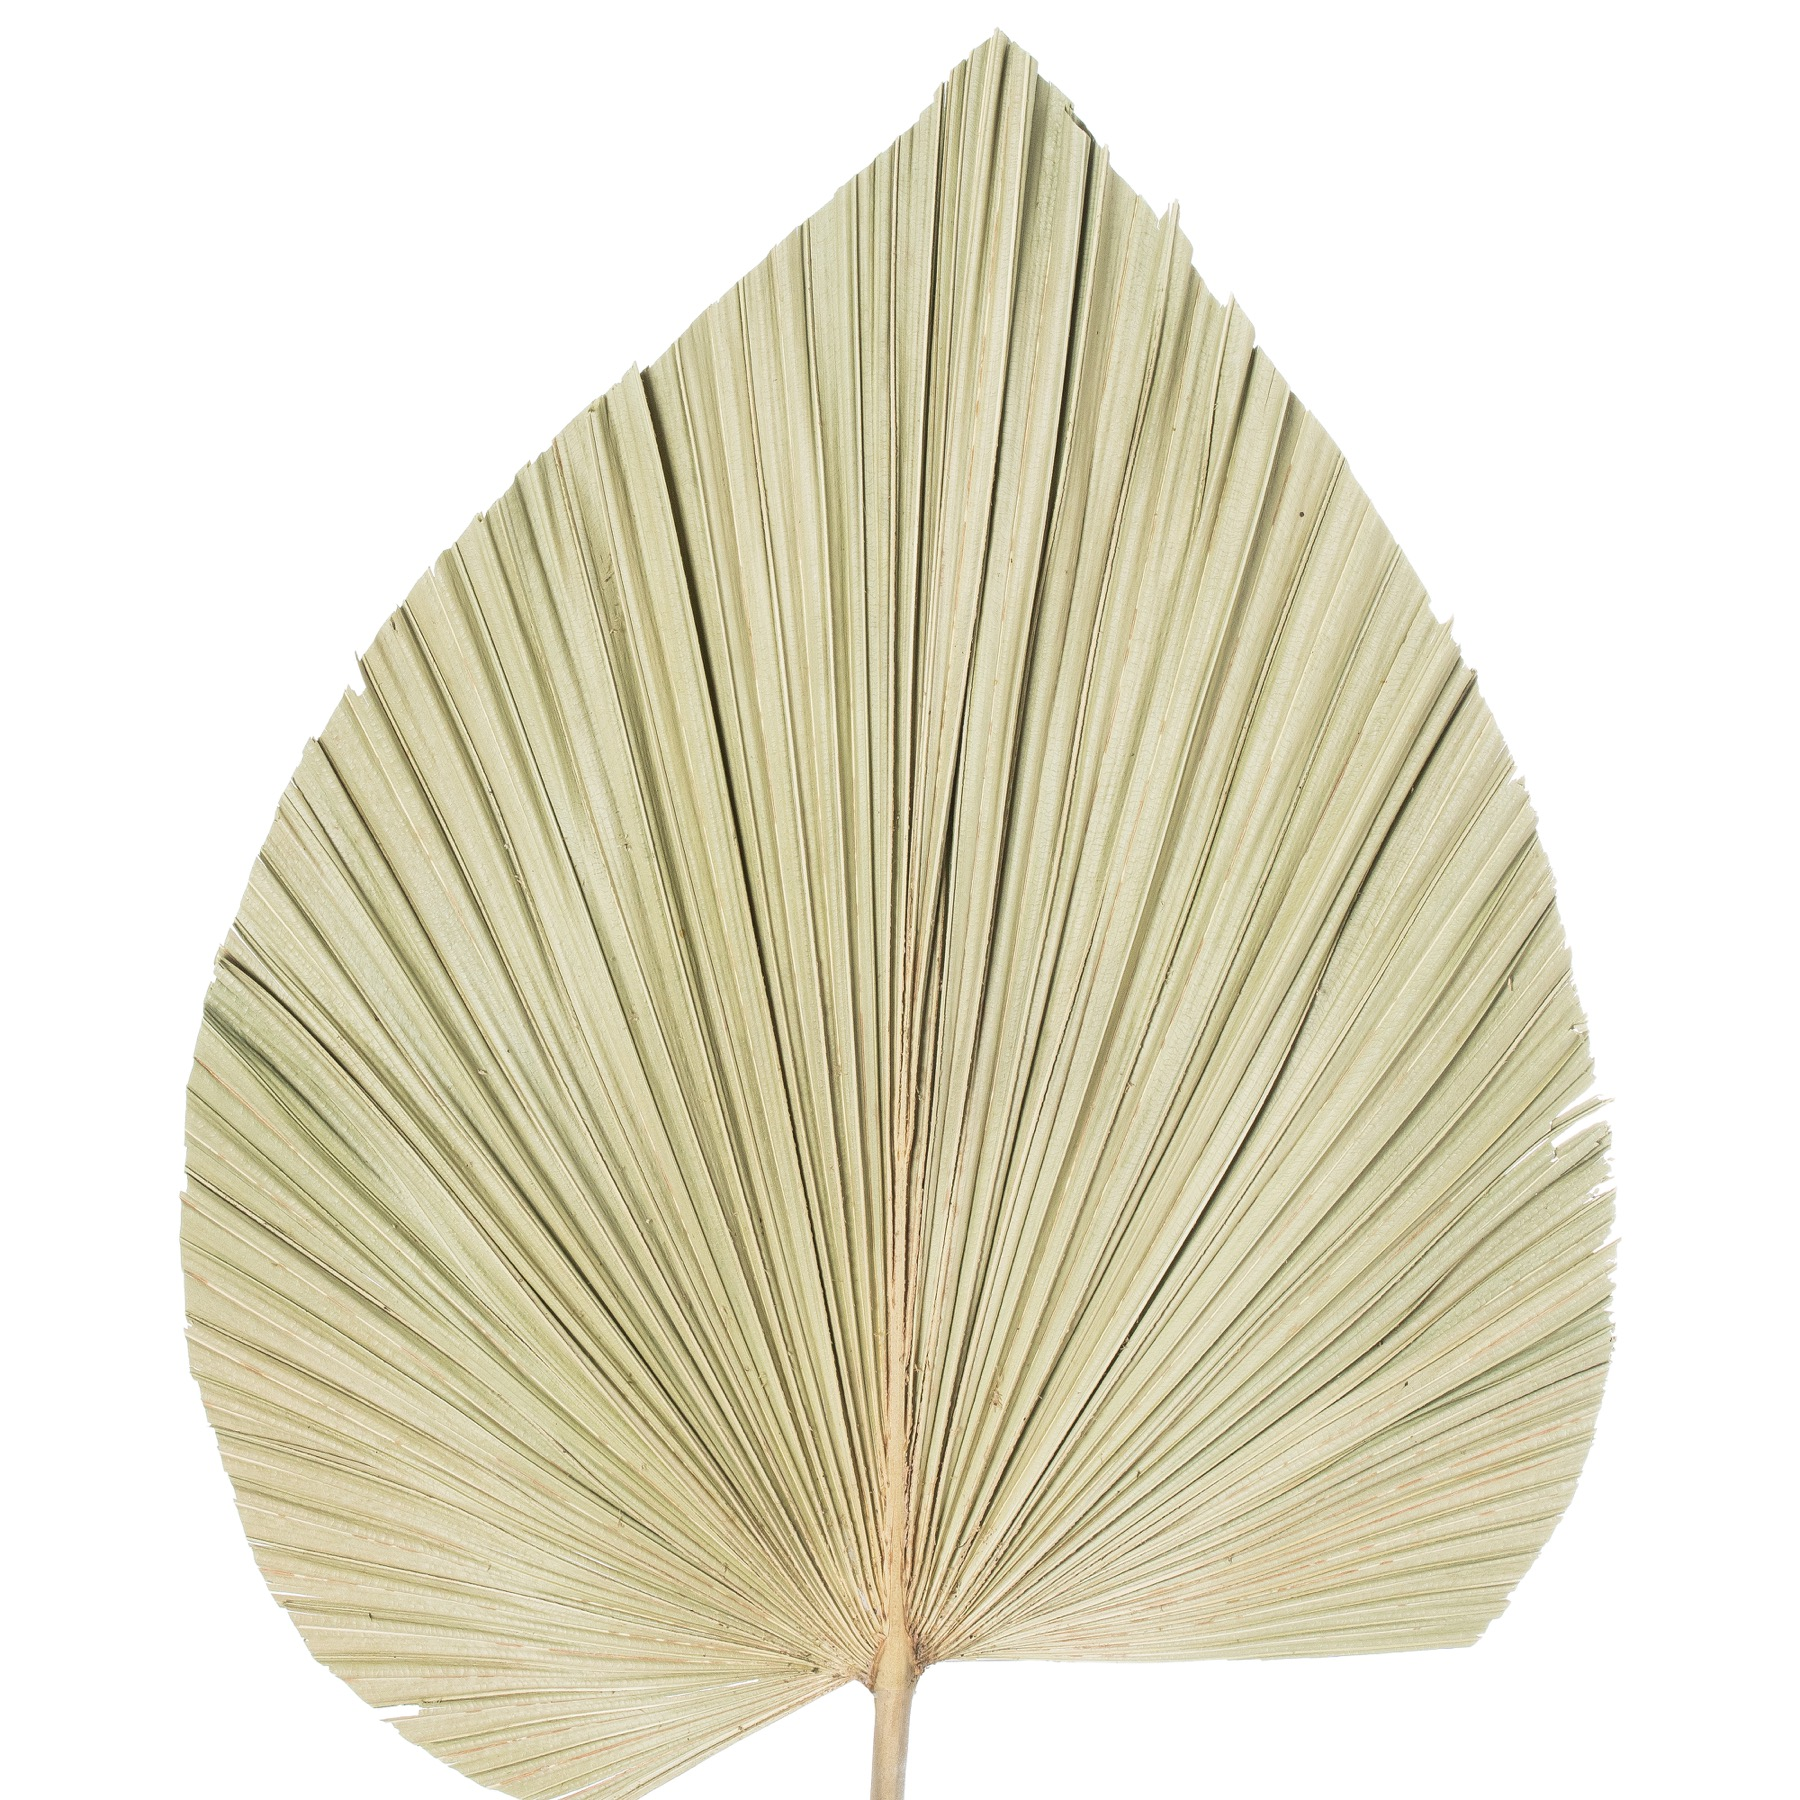 Dried Natural Fan Palm - Image 4